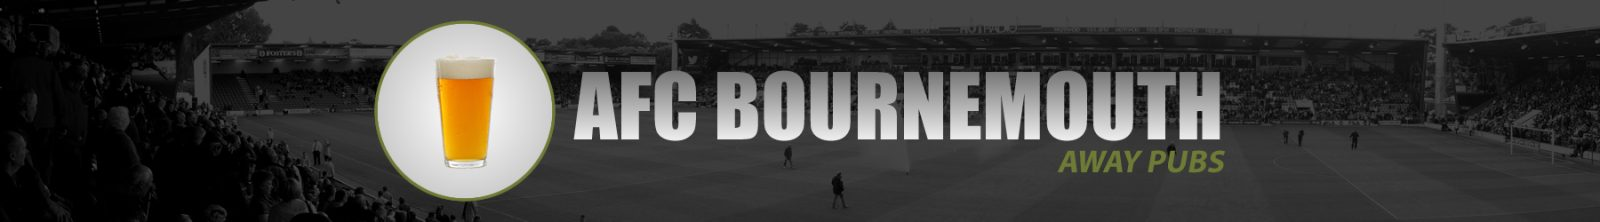 AFC Bournemouth Away Pubs